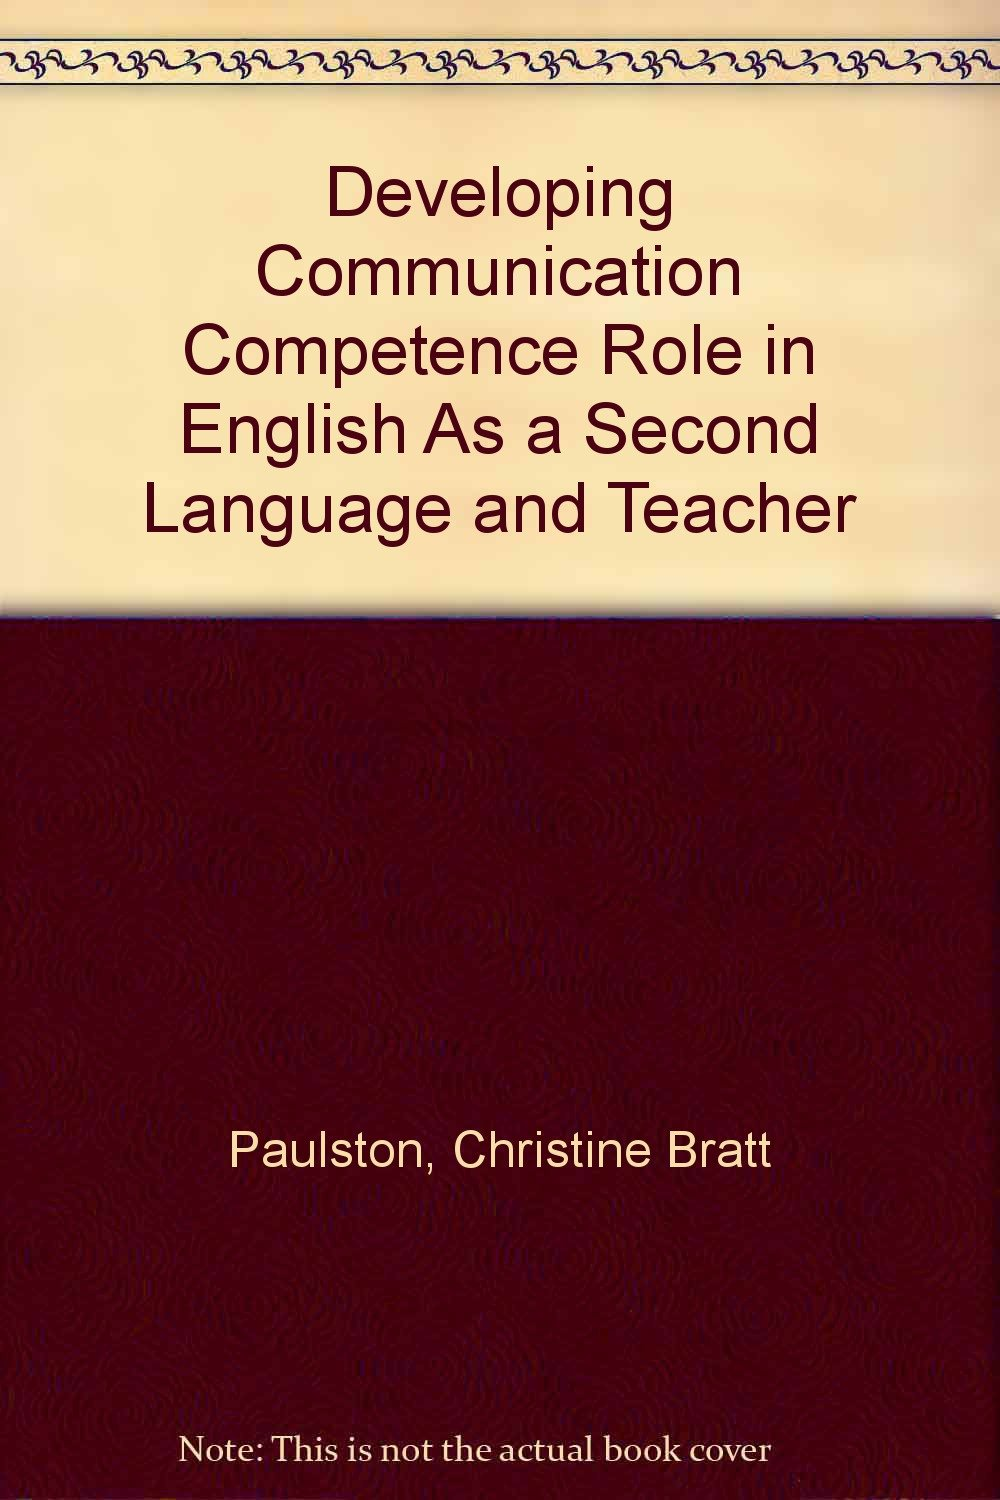 Developing Communication Competence Role in English As a